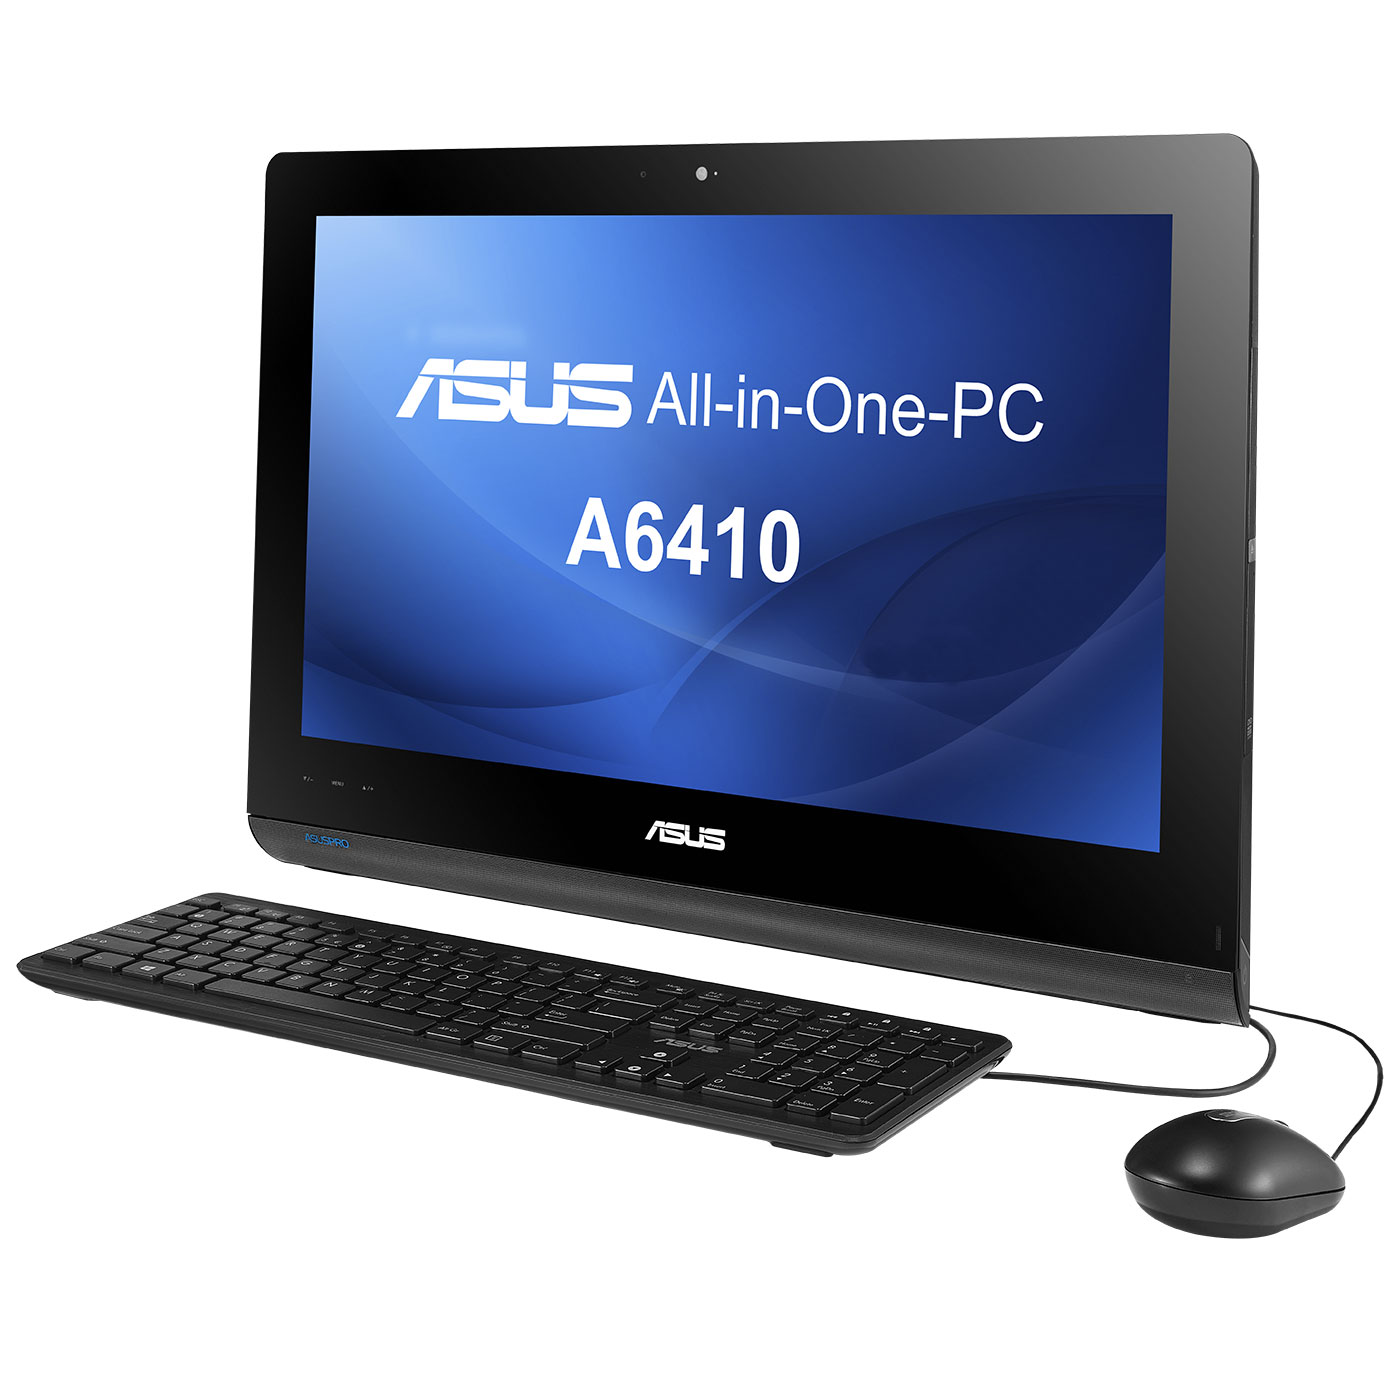 asus all in one pc a6410 bc046t a6410 bc046t achat vente pc de bureau sur ldlc be